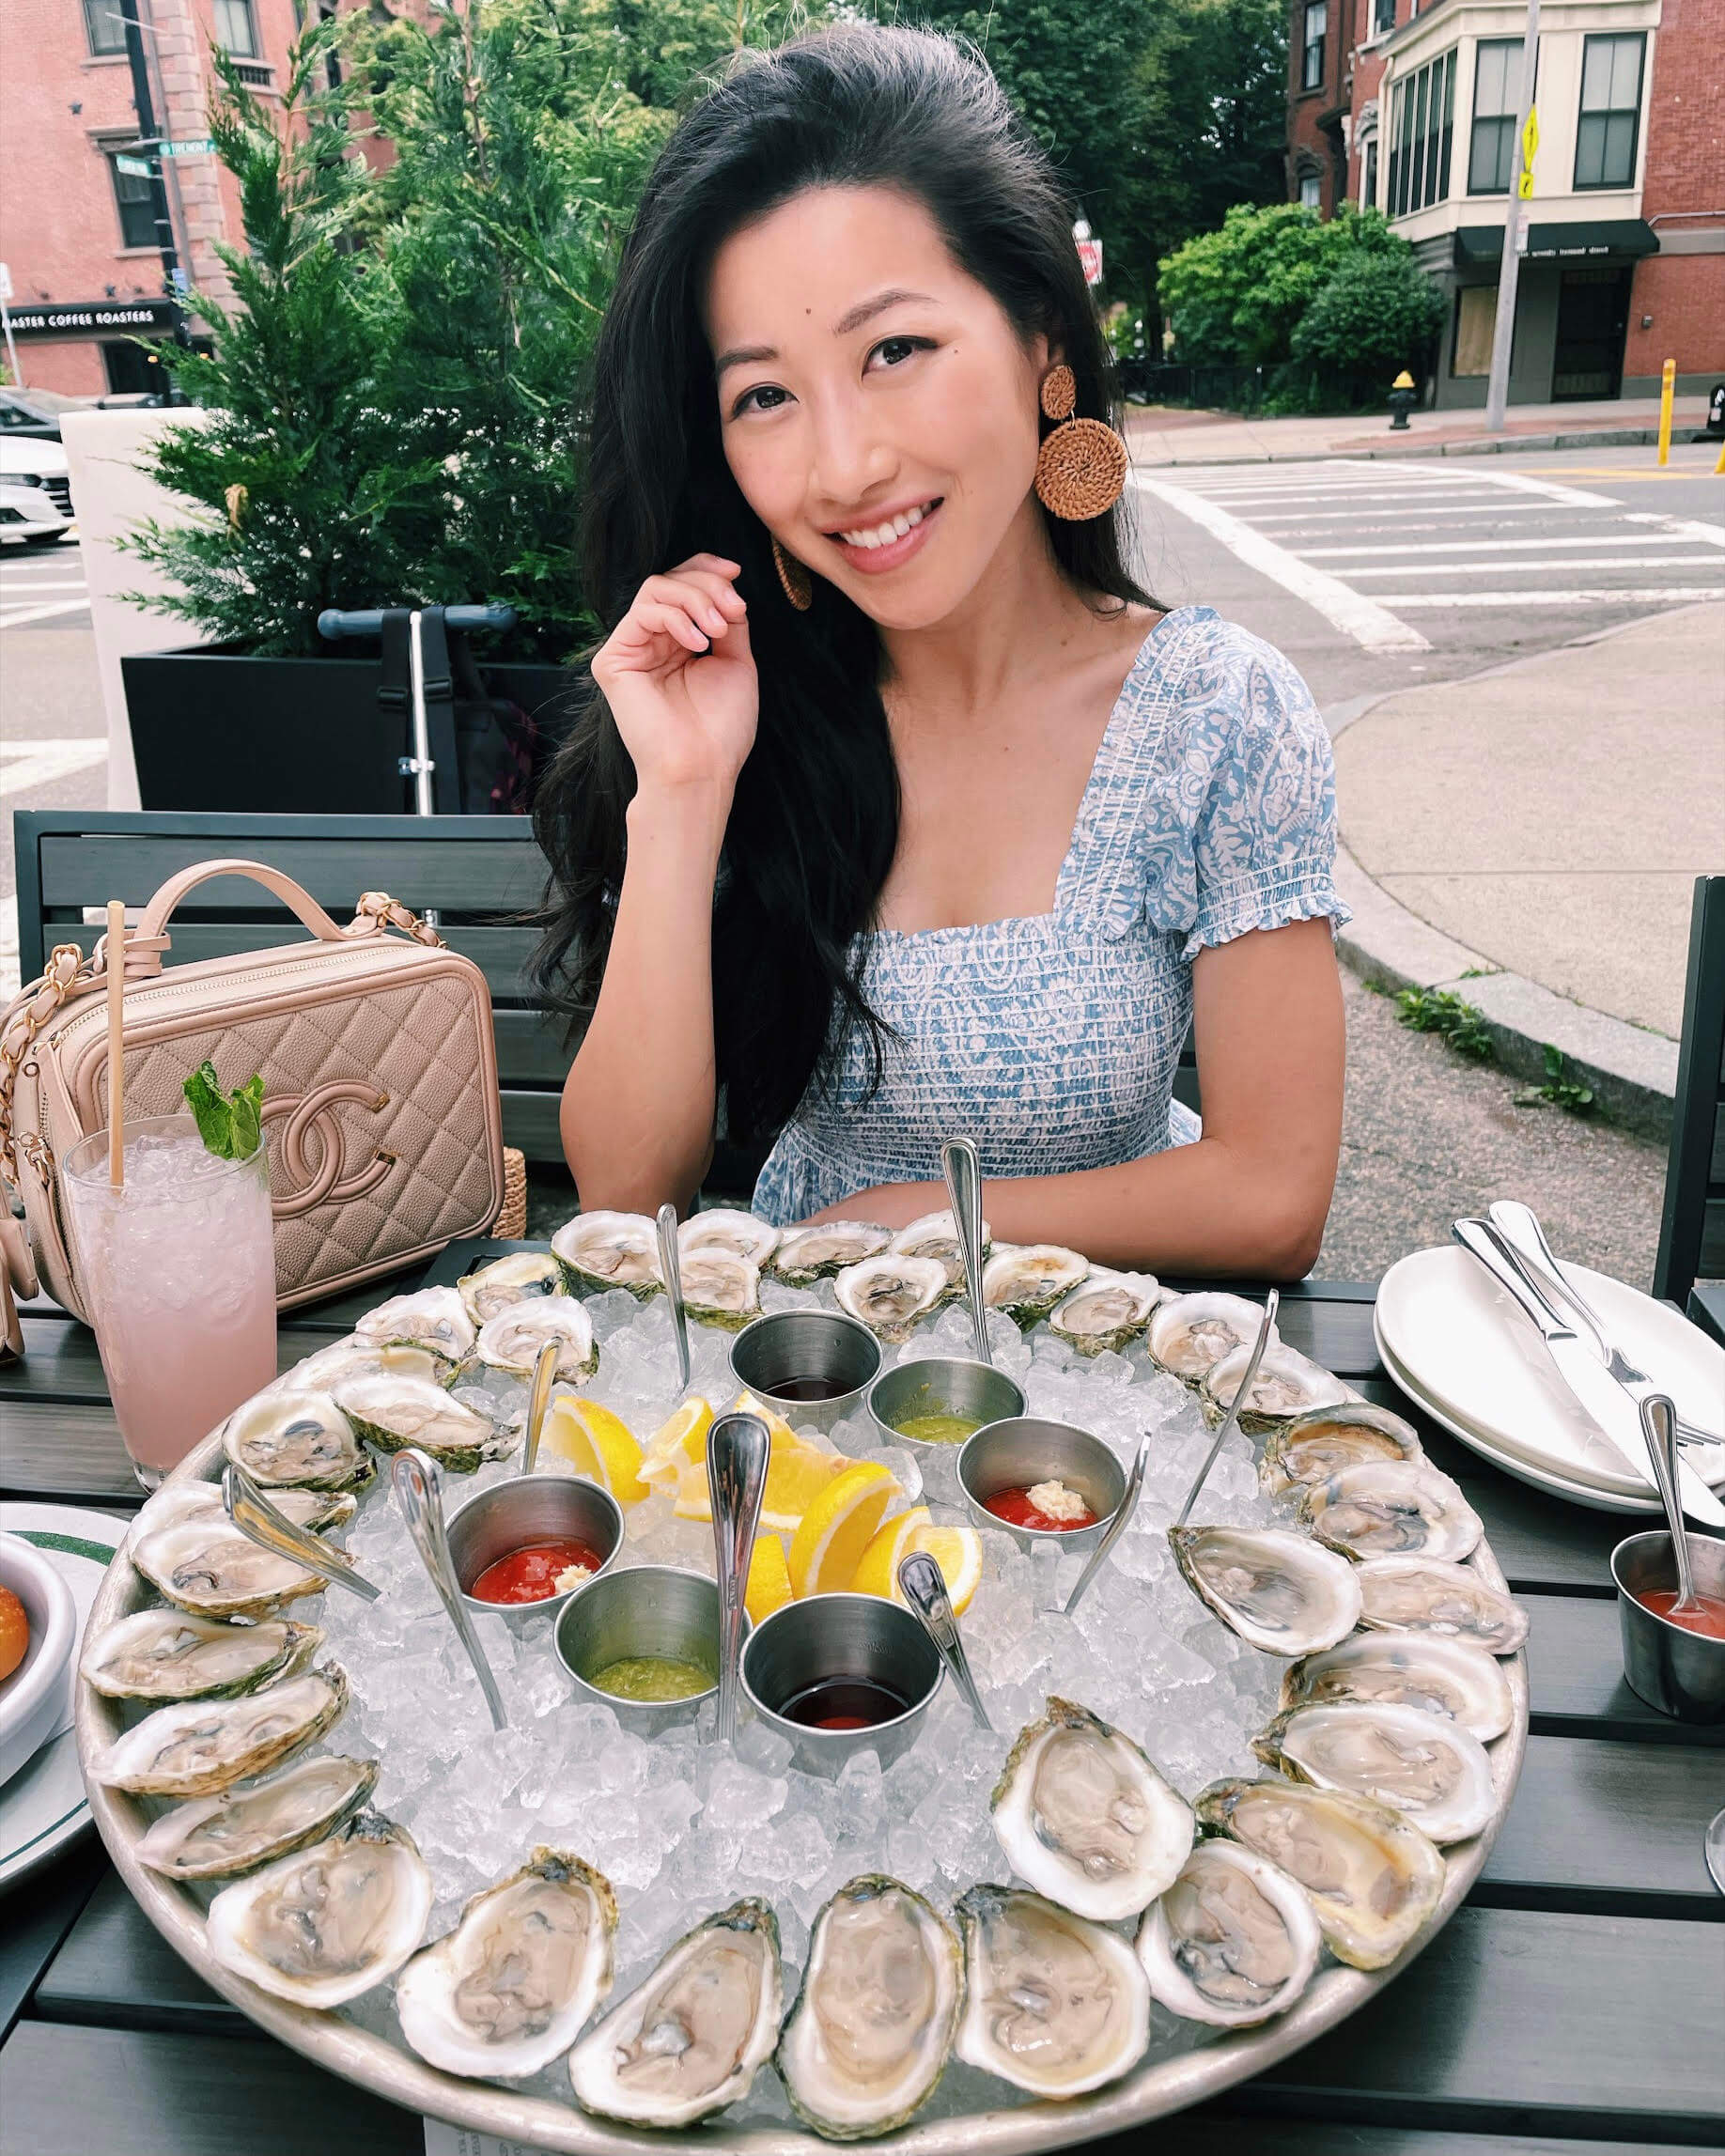 Boston $1 oysters